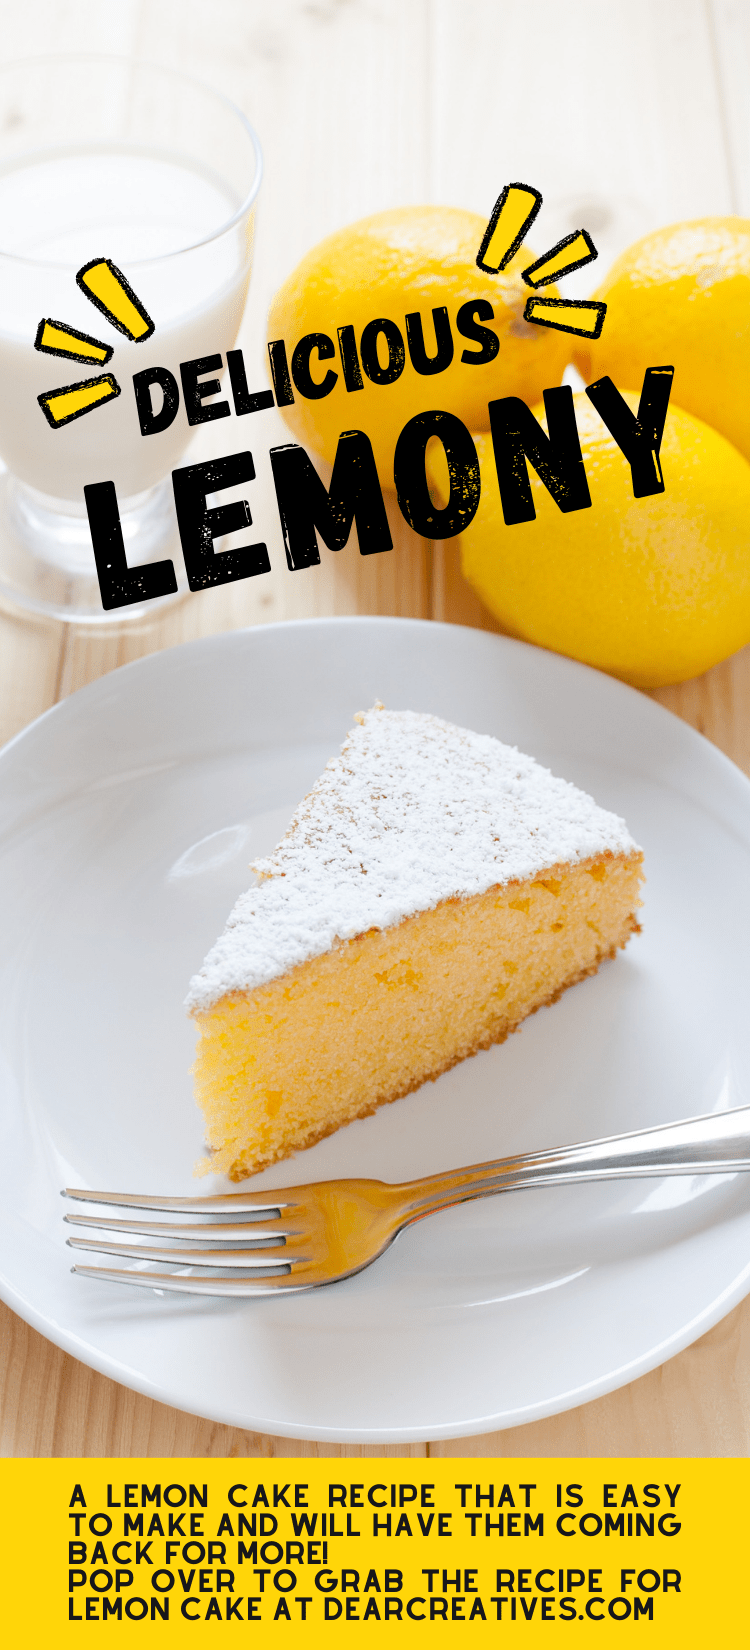 Lemon Cake Recipe With Lemon Glaze